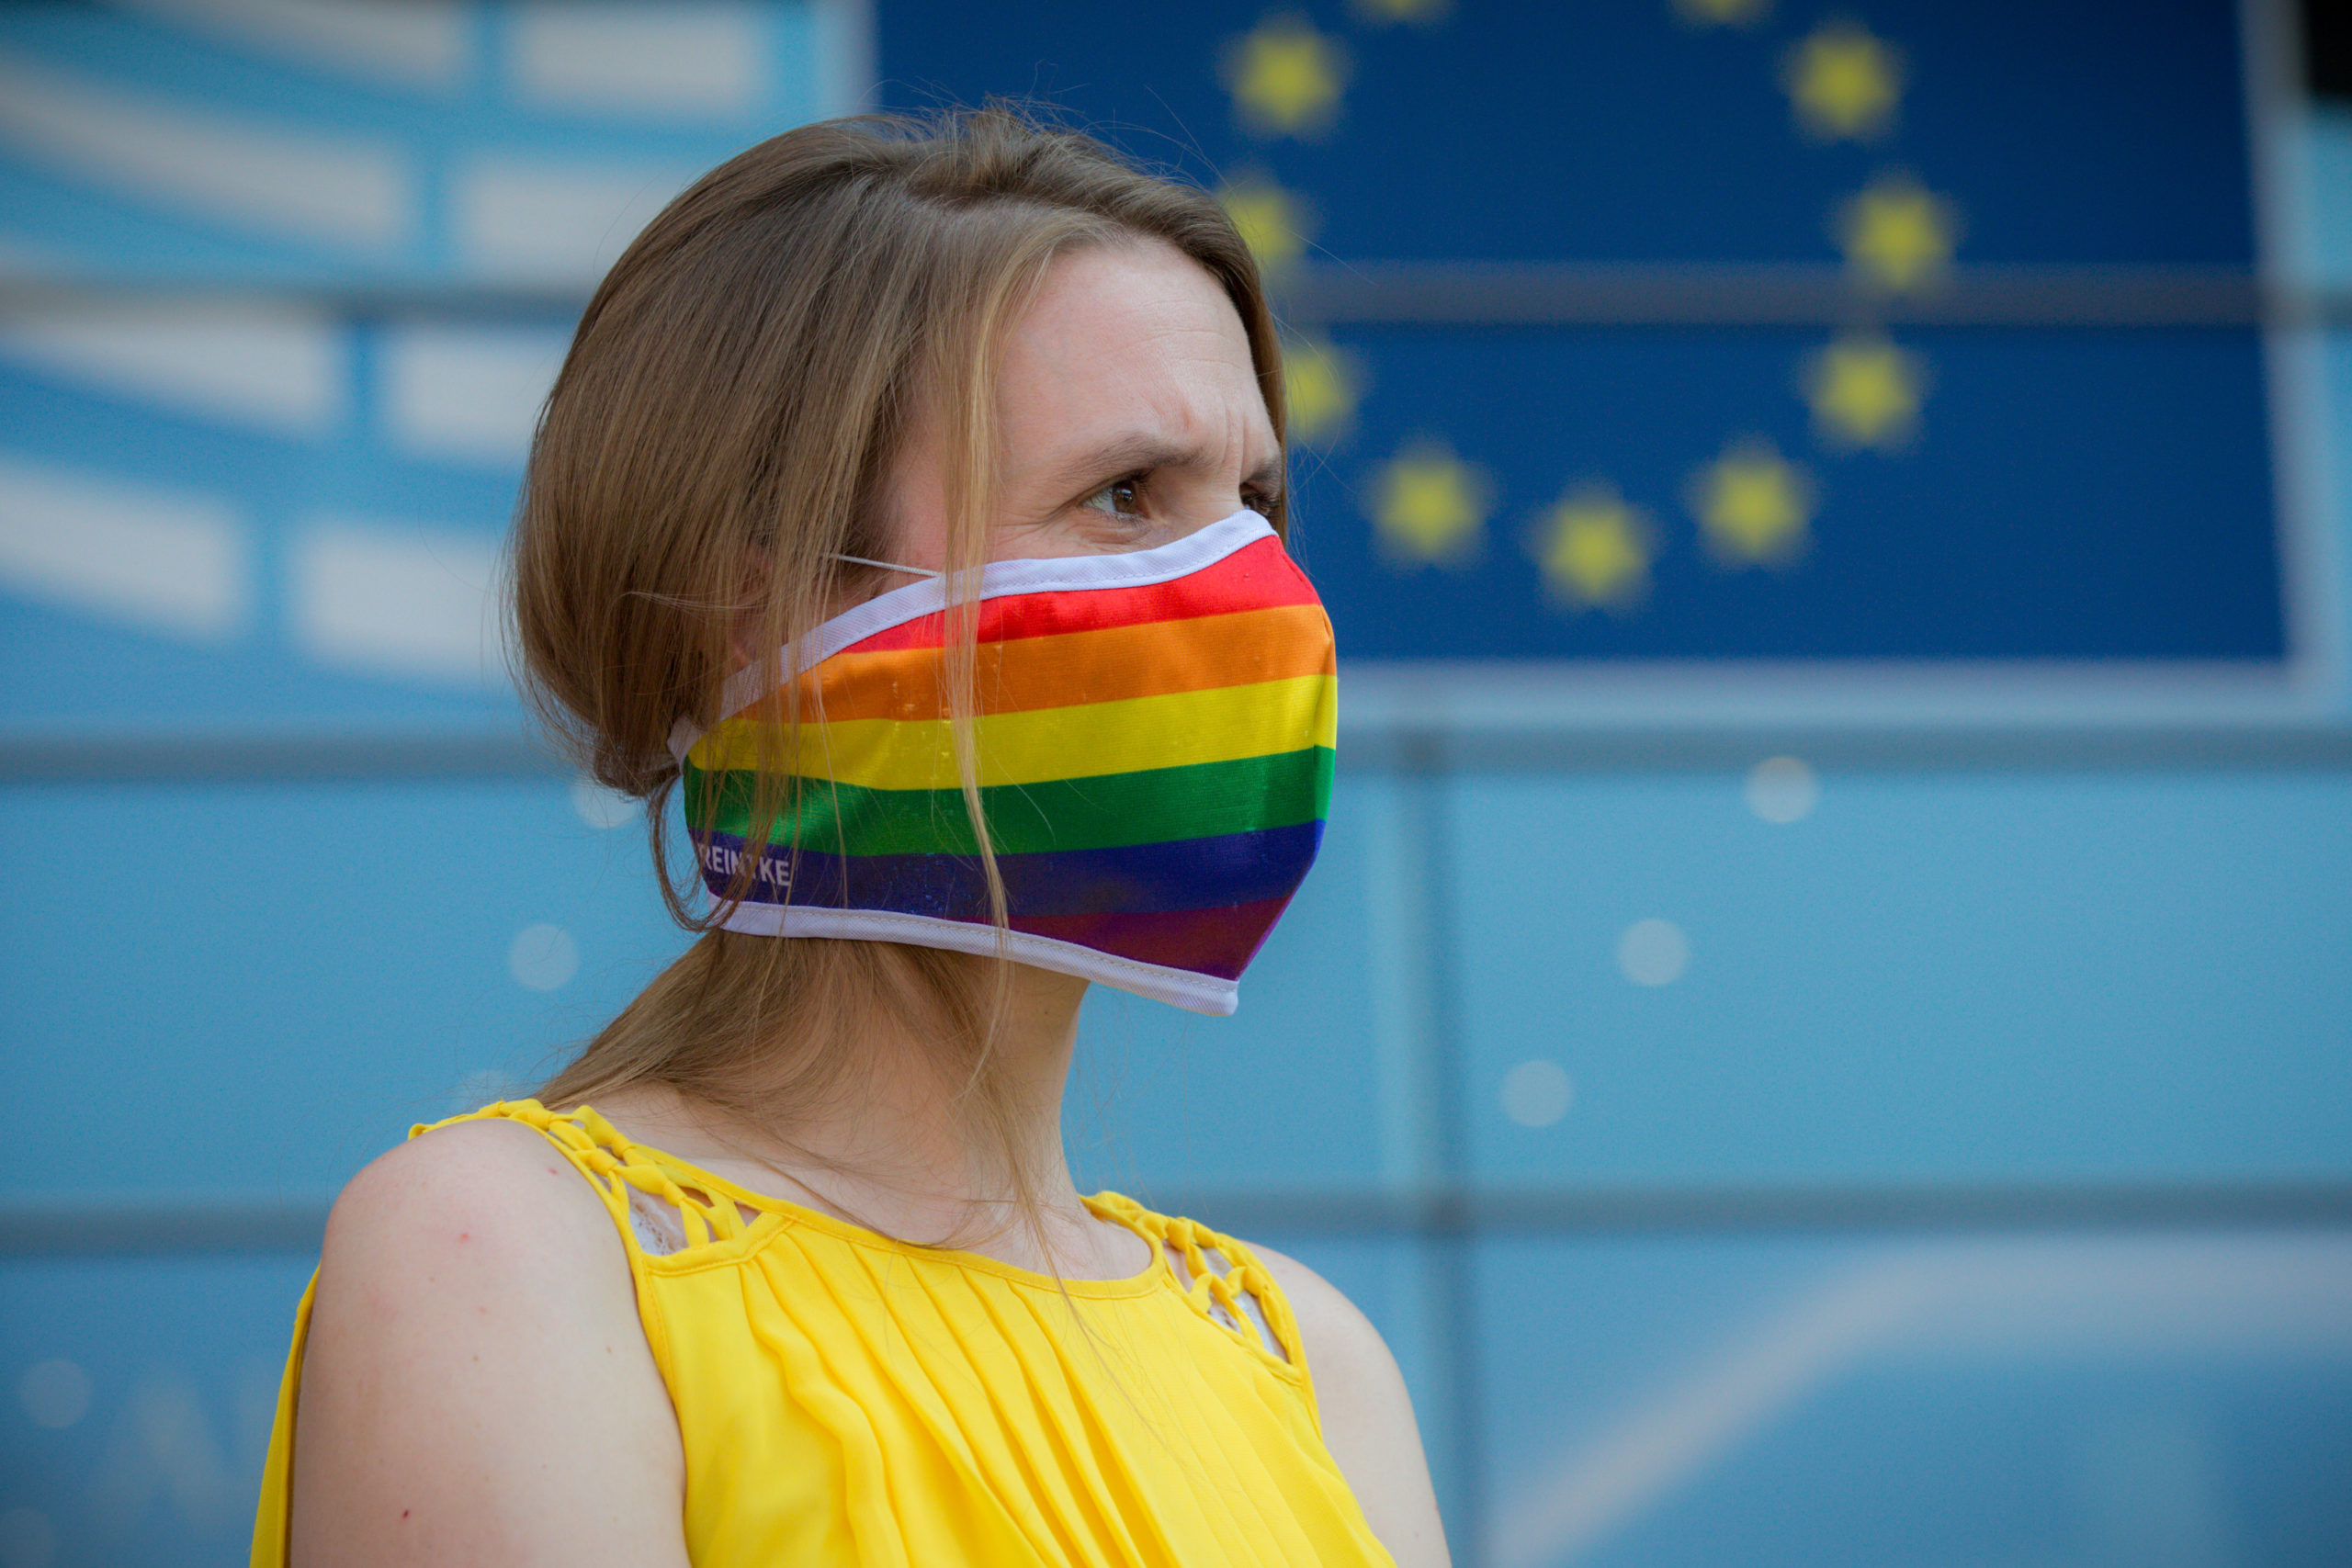 MEPs have vowed to stand up to anti-LGBT+ extremism in Poland